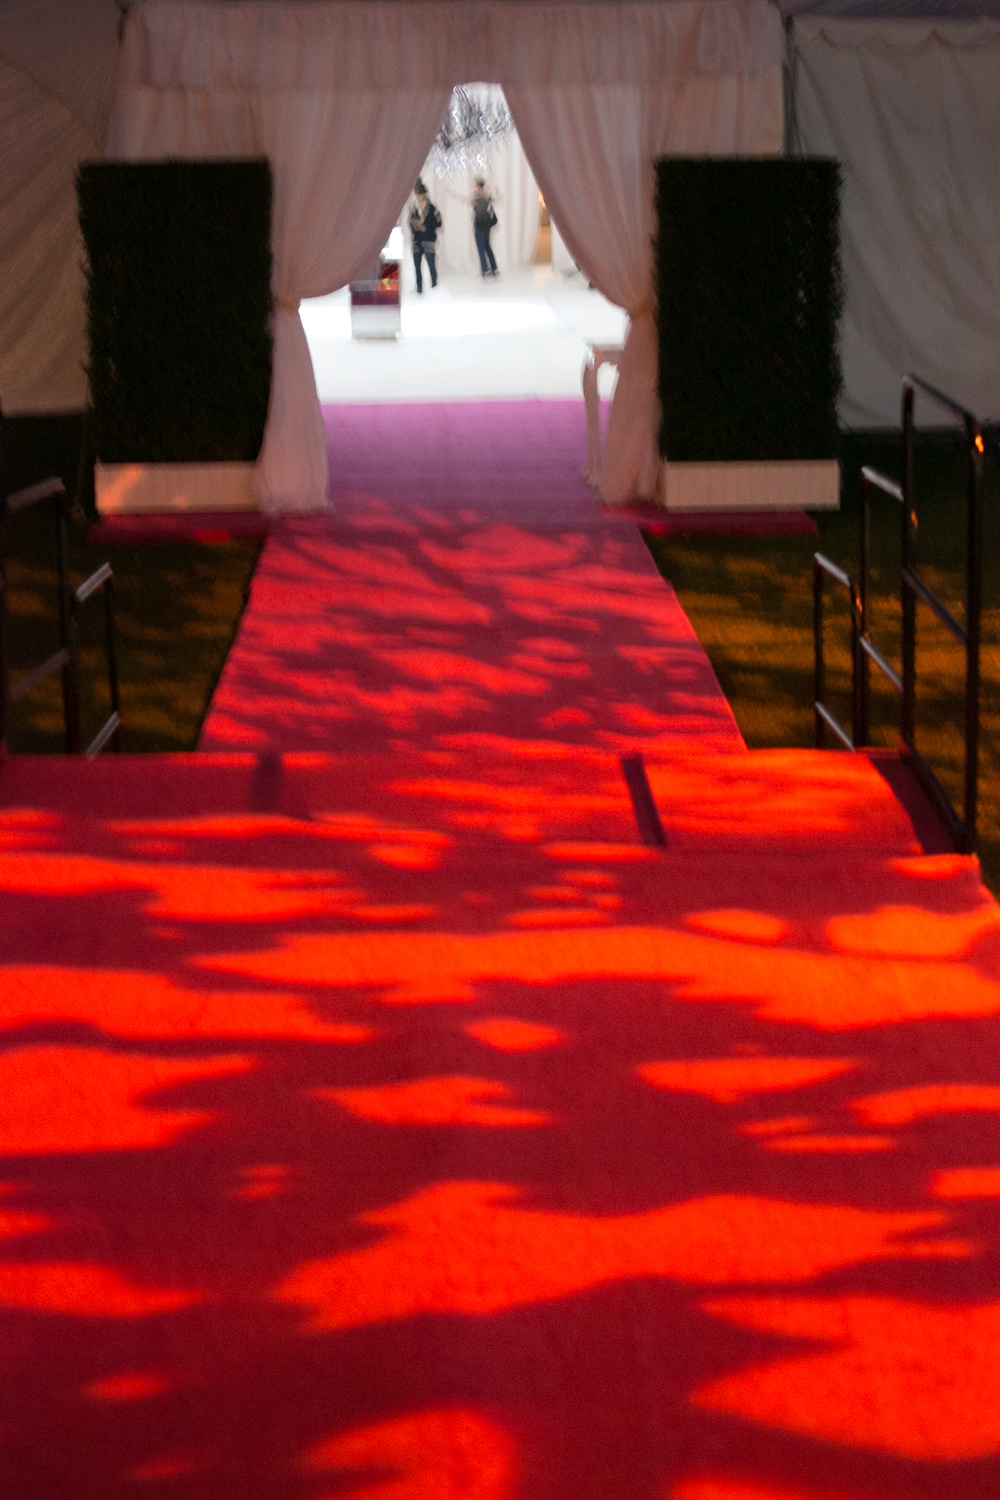 Entrance to Event Lighted with Gobo Pattern